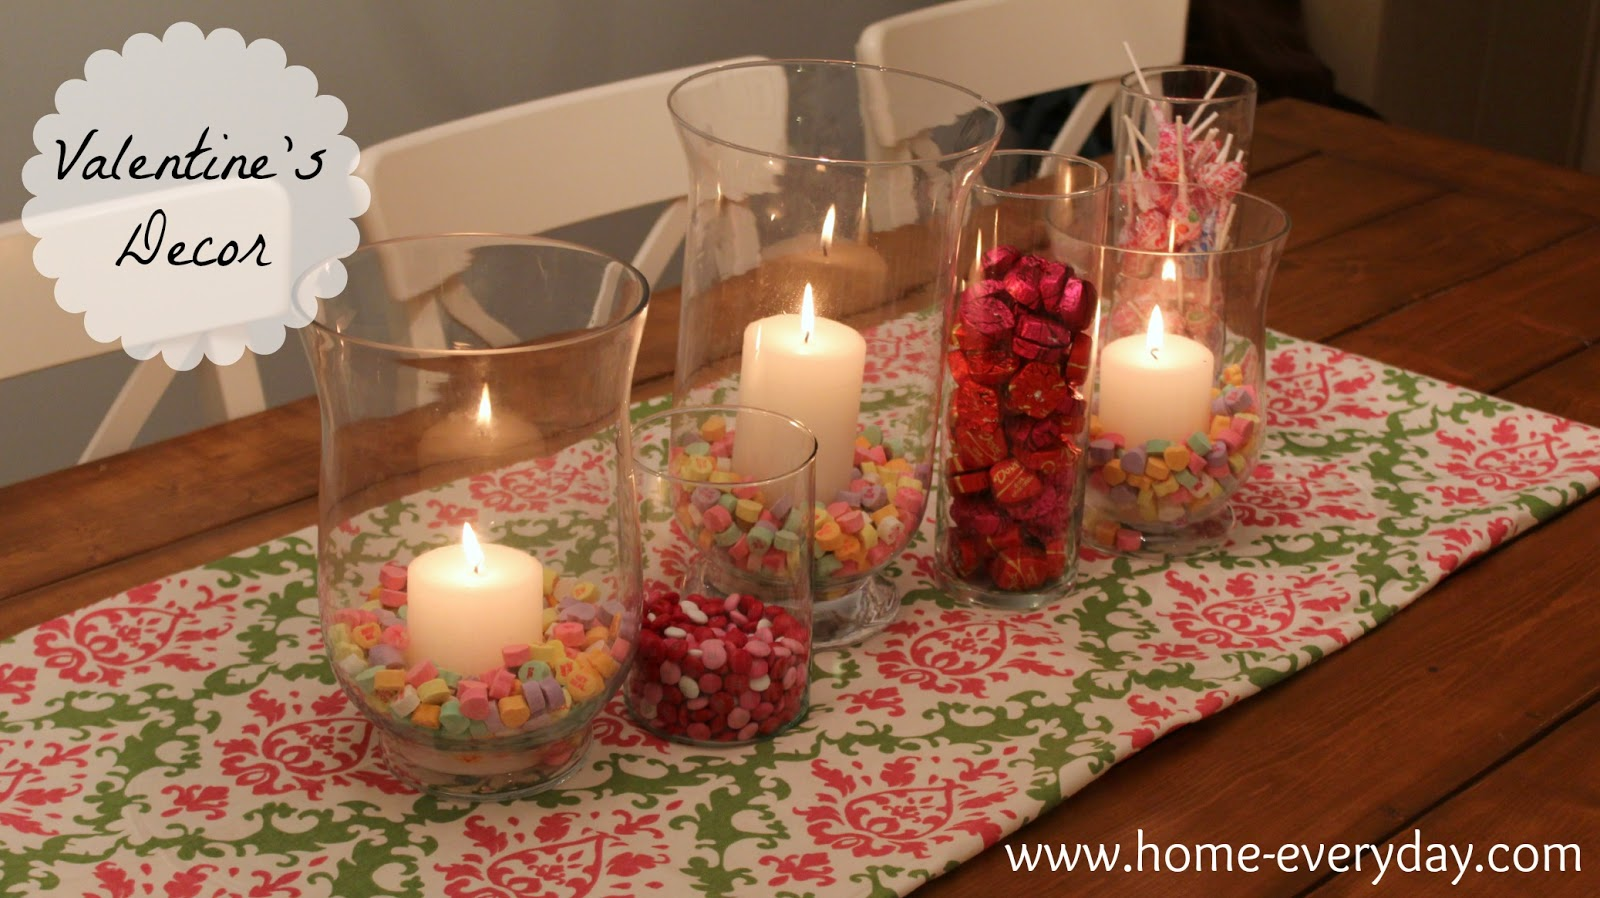 Flowers Candy And Books Valentine S Dining Table Decor Home Everyday